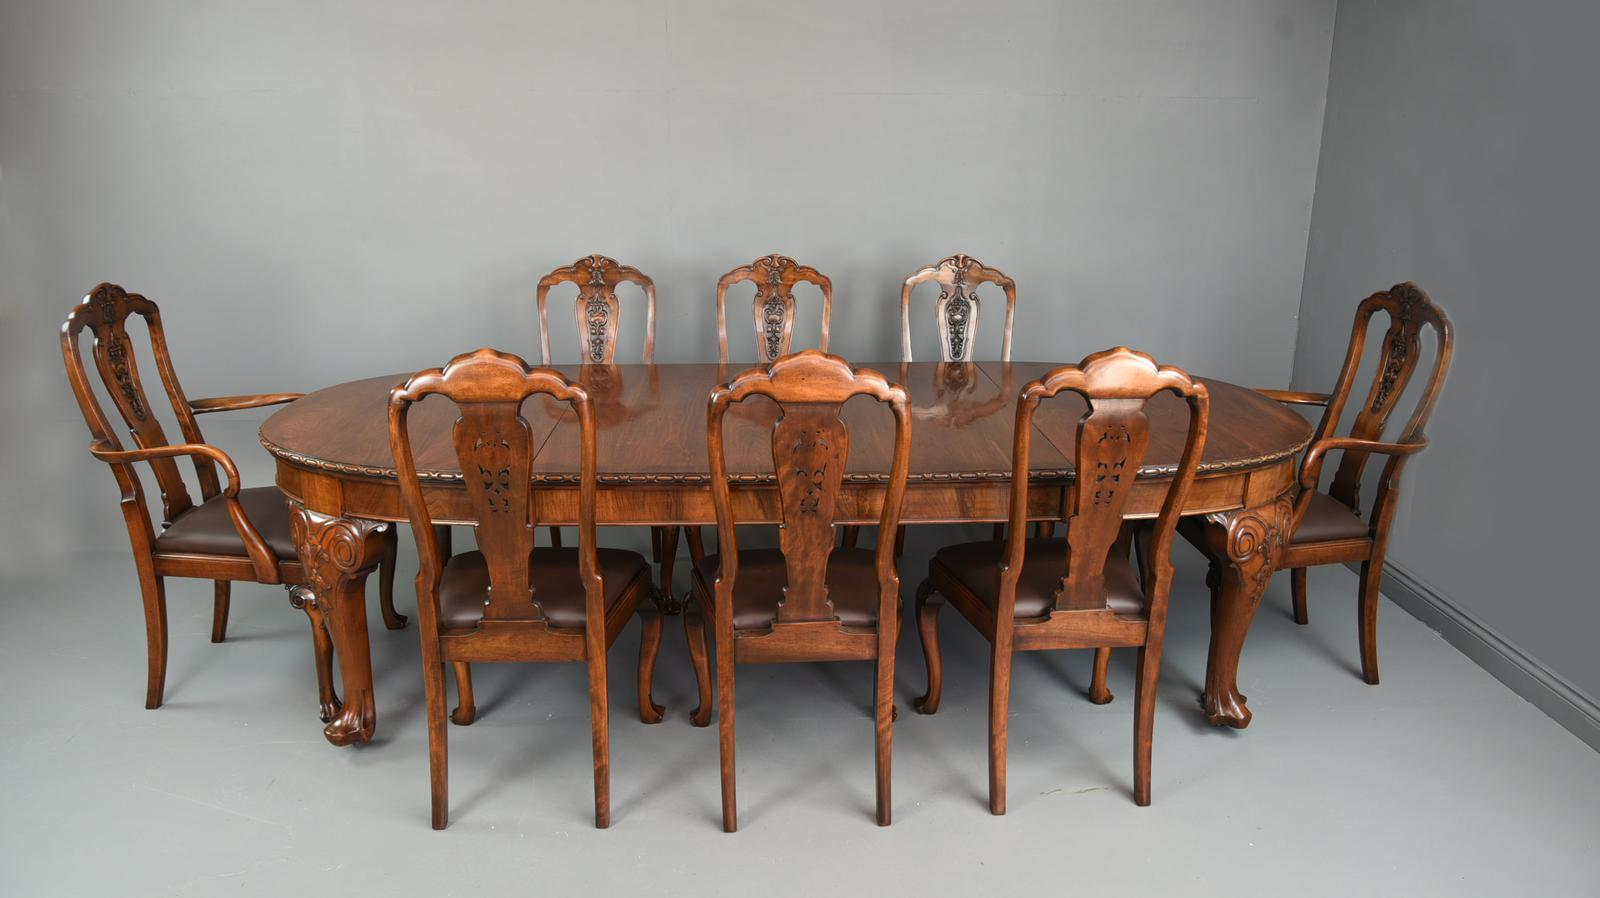 Antique Walnut Dining Suite by S Hille & Co London (1 of 1)